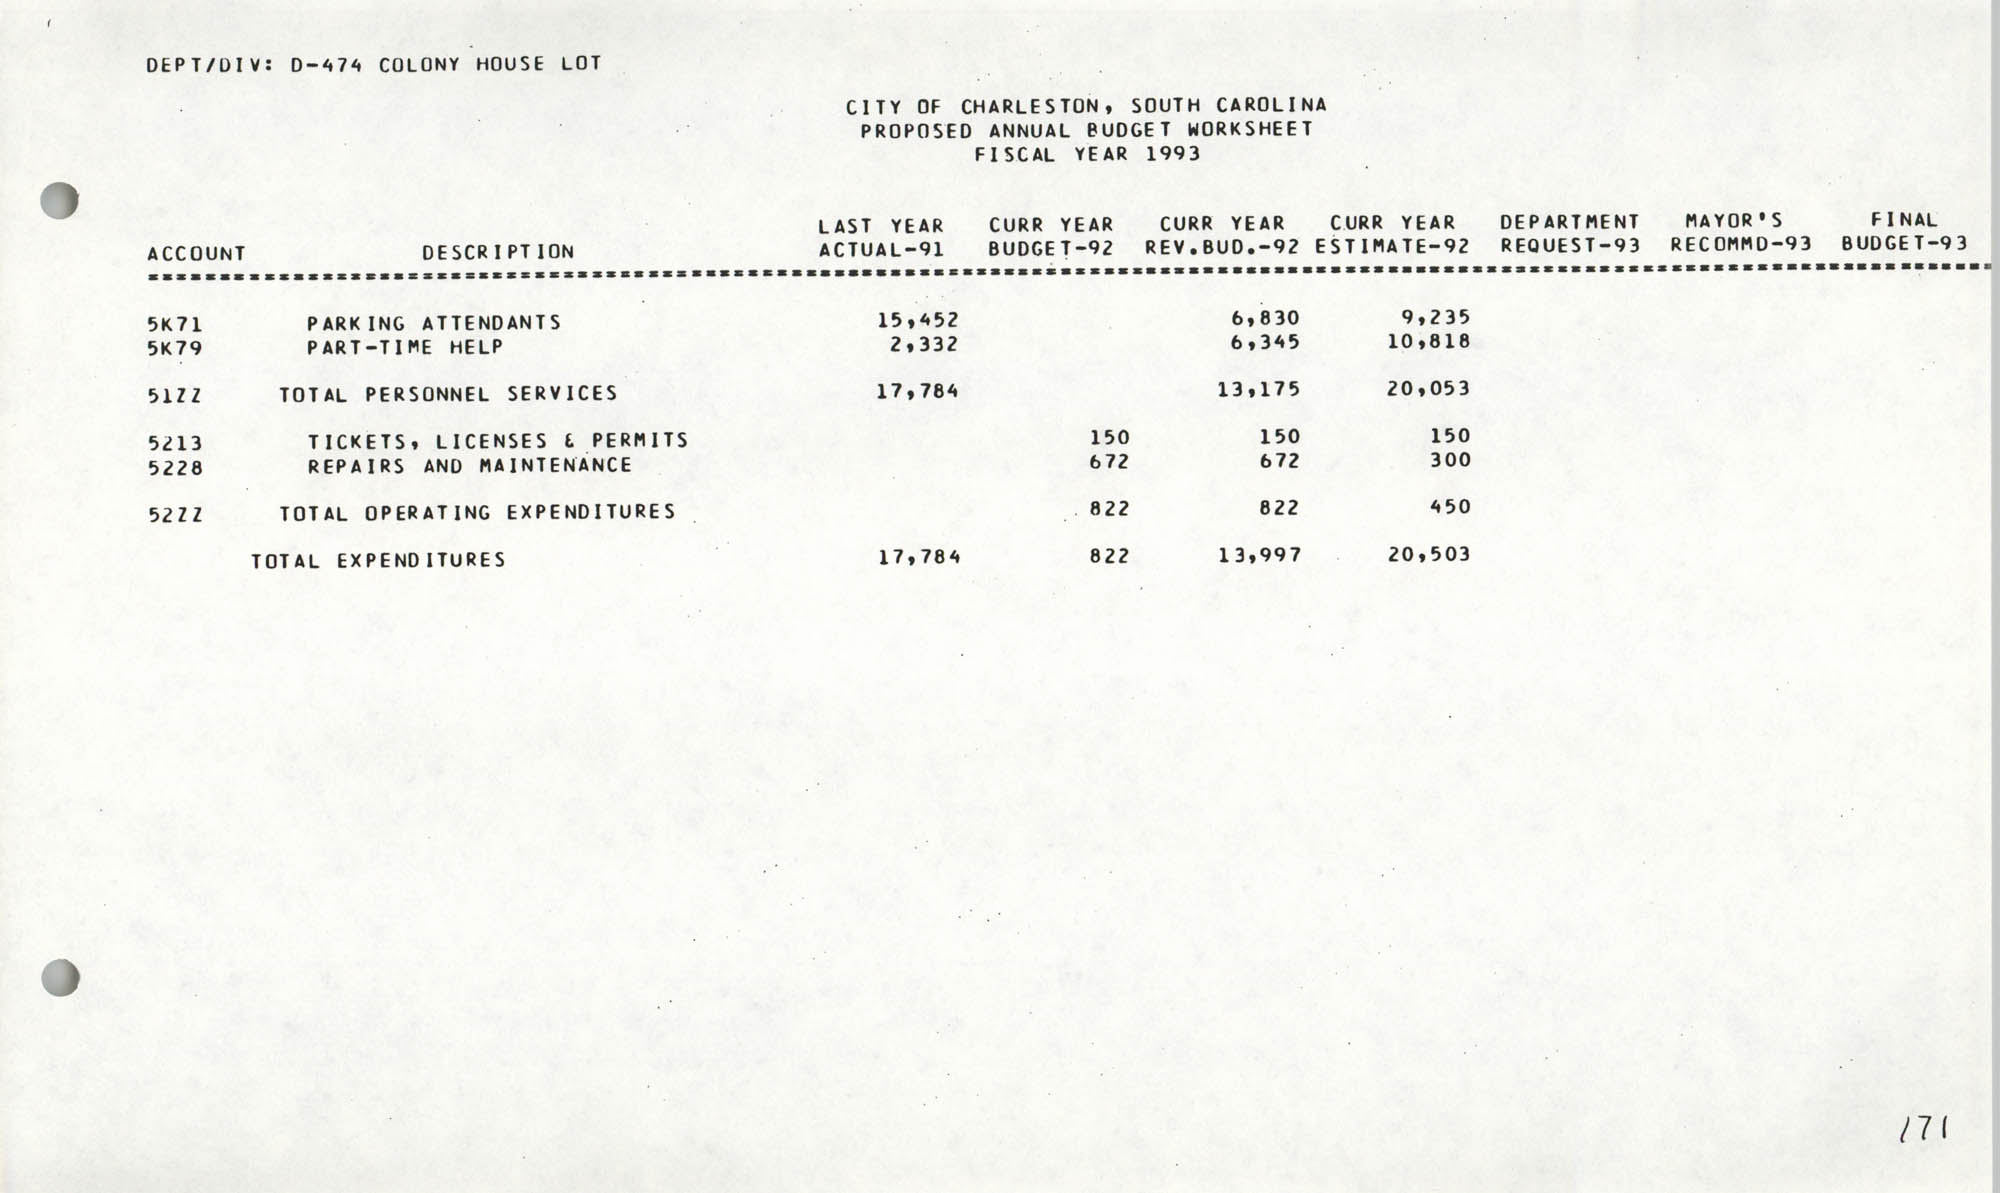 The City Council of Charleston, South Carolina, 1993 Budget, Page 171